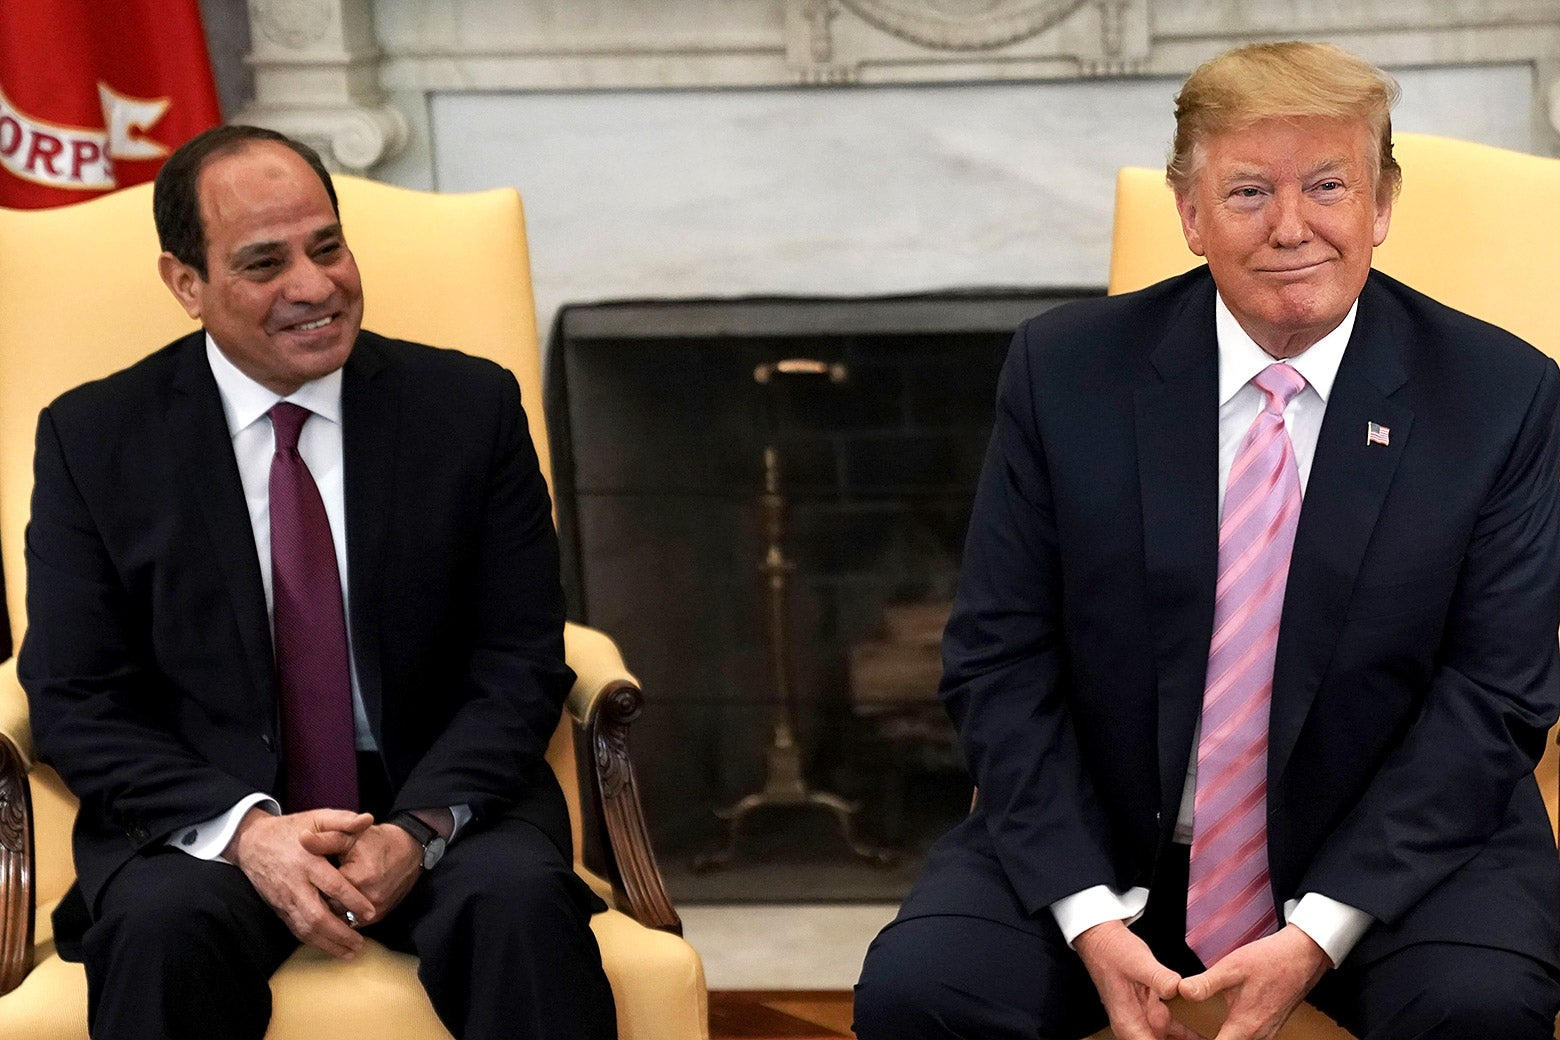 Donald Trump meets with Egyptian President Abdel-Fattah el-Sisi in the Oval Office.